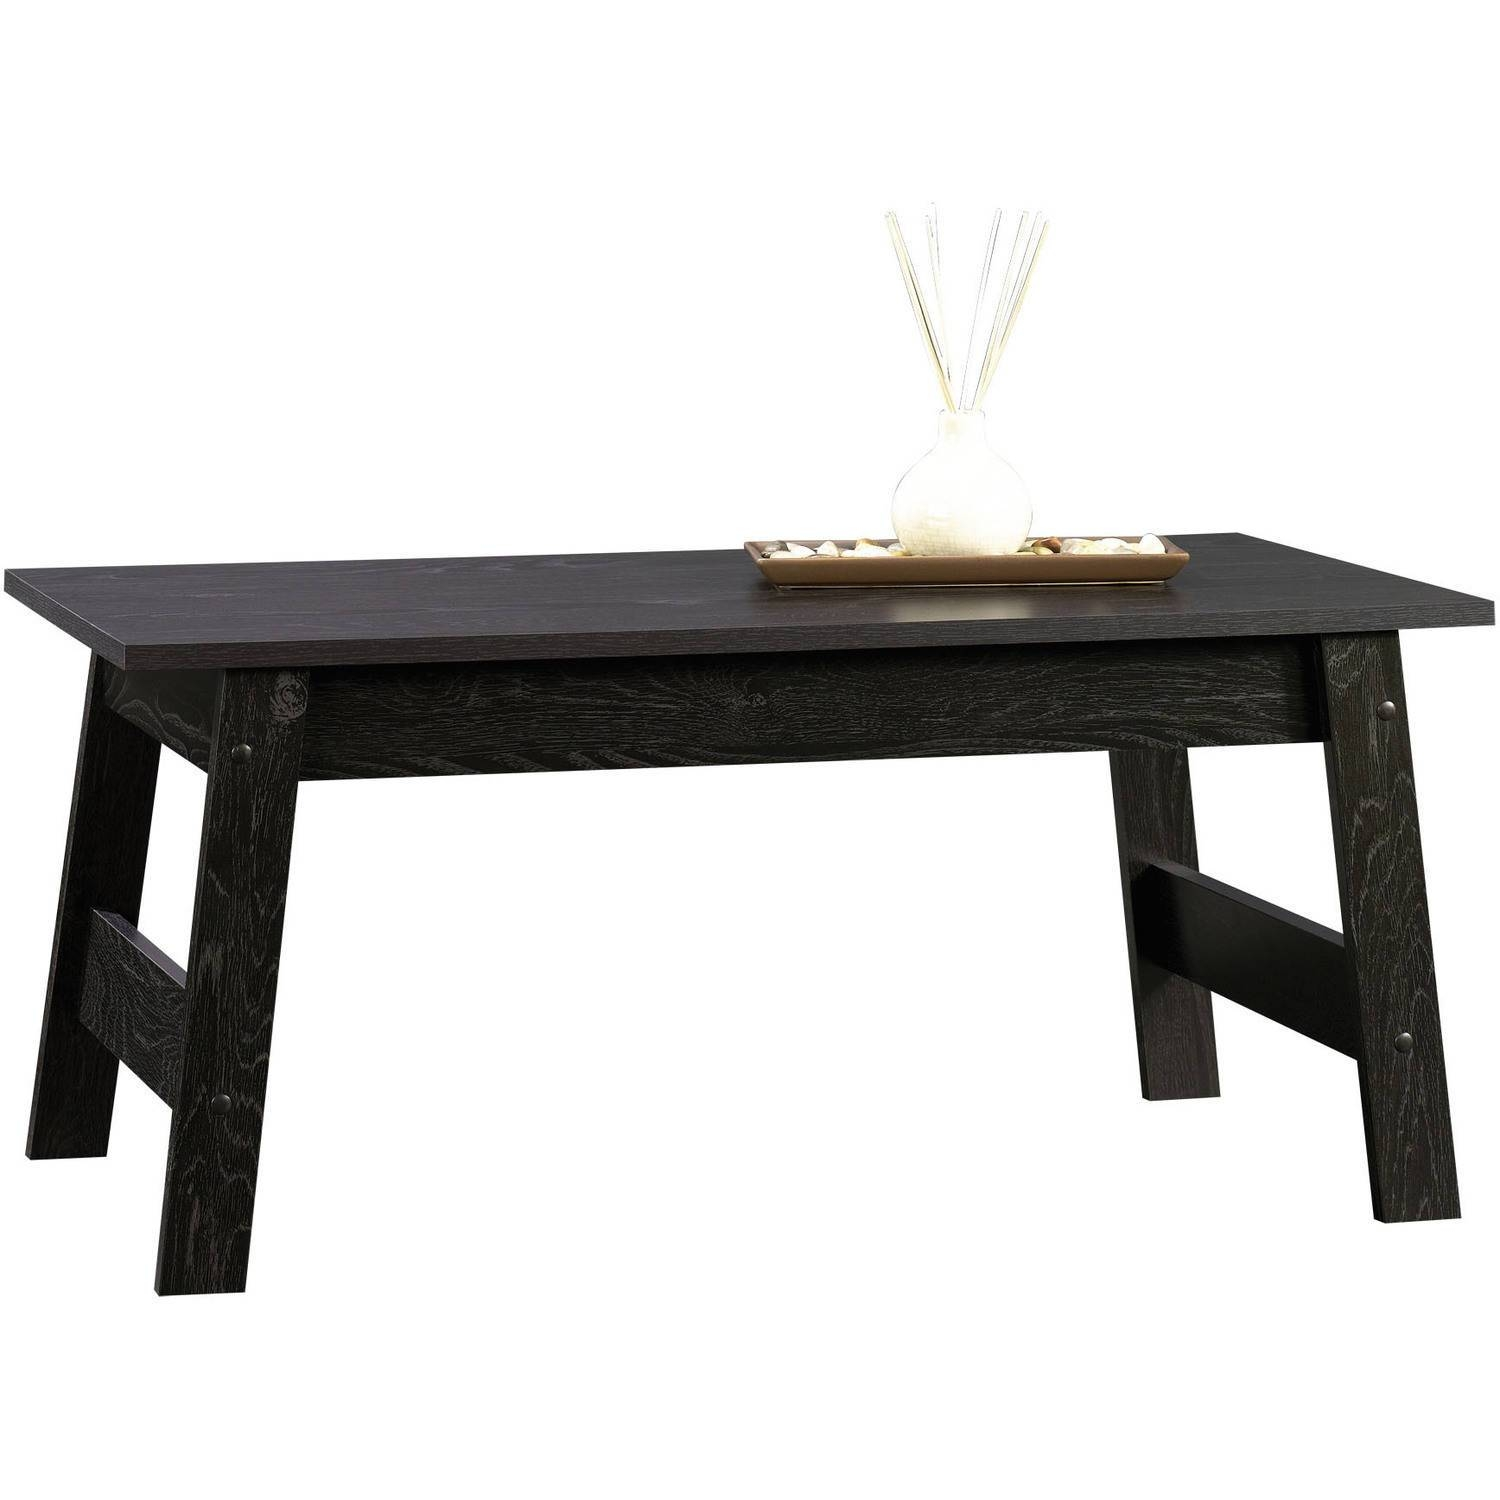 Sauder Beginnings Collection Coffee Table, Black - Walmart with Black Oval Coffee Table (Image 25 of 30)